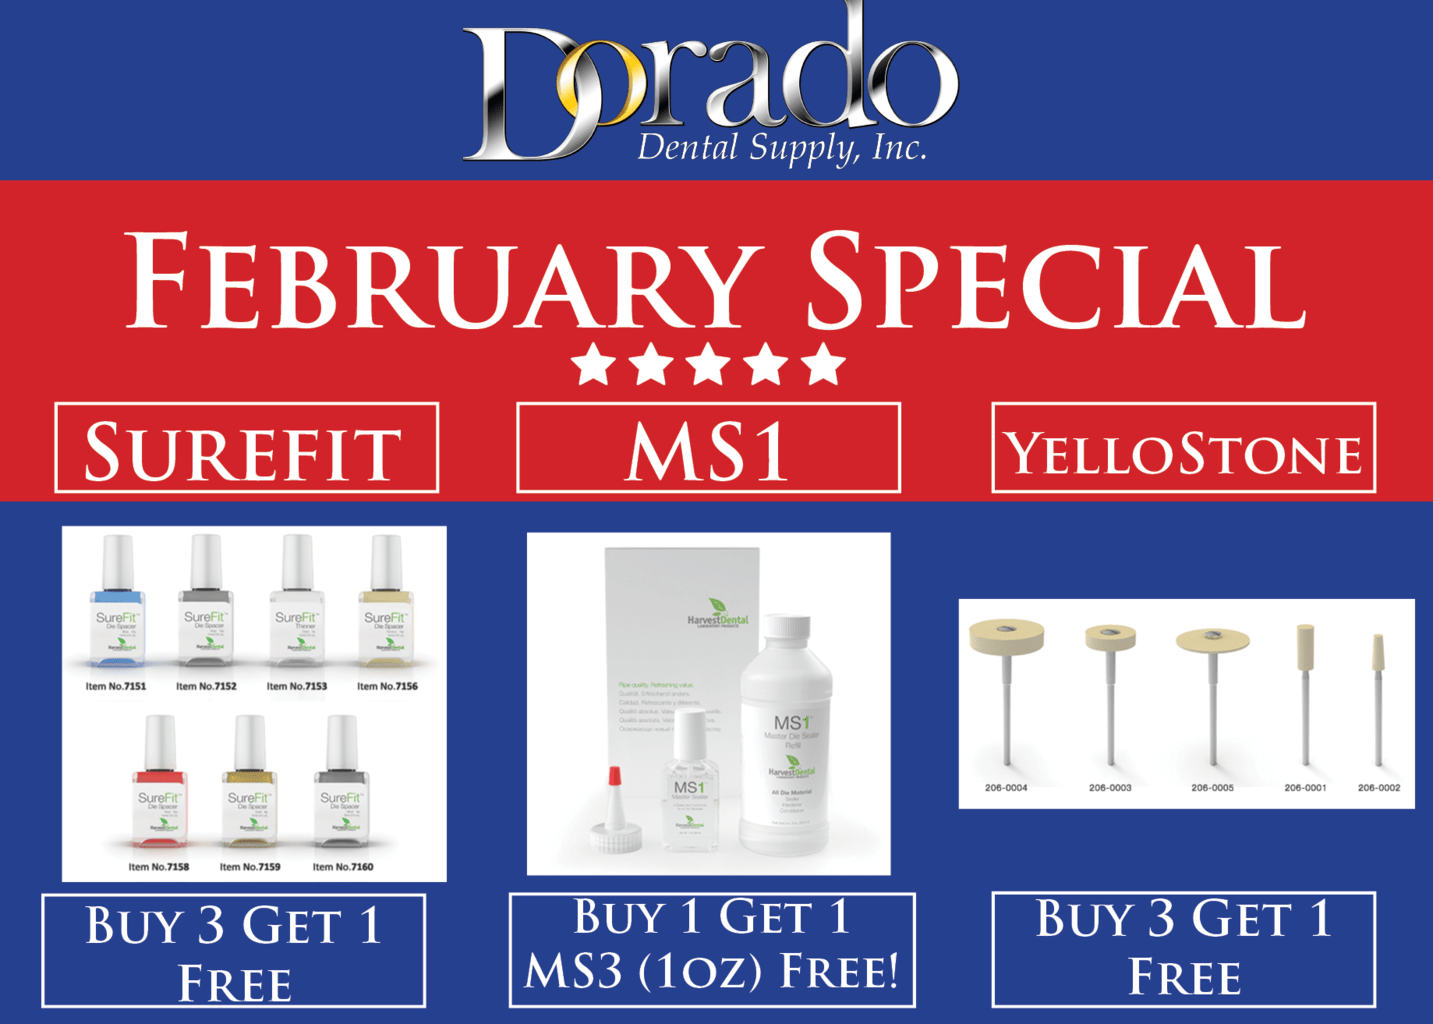 February 2018 Special - Dorado Dental Supply, Inc.